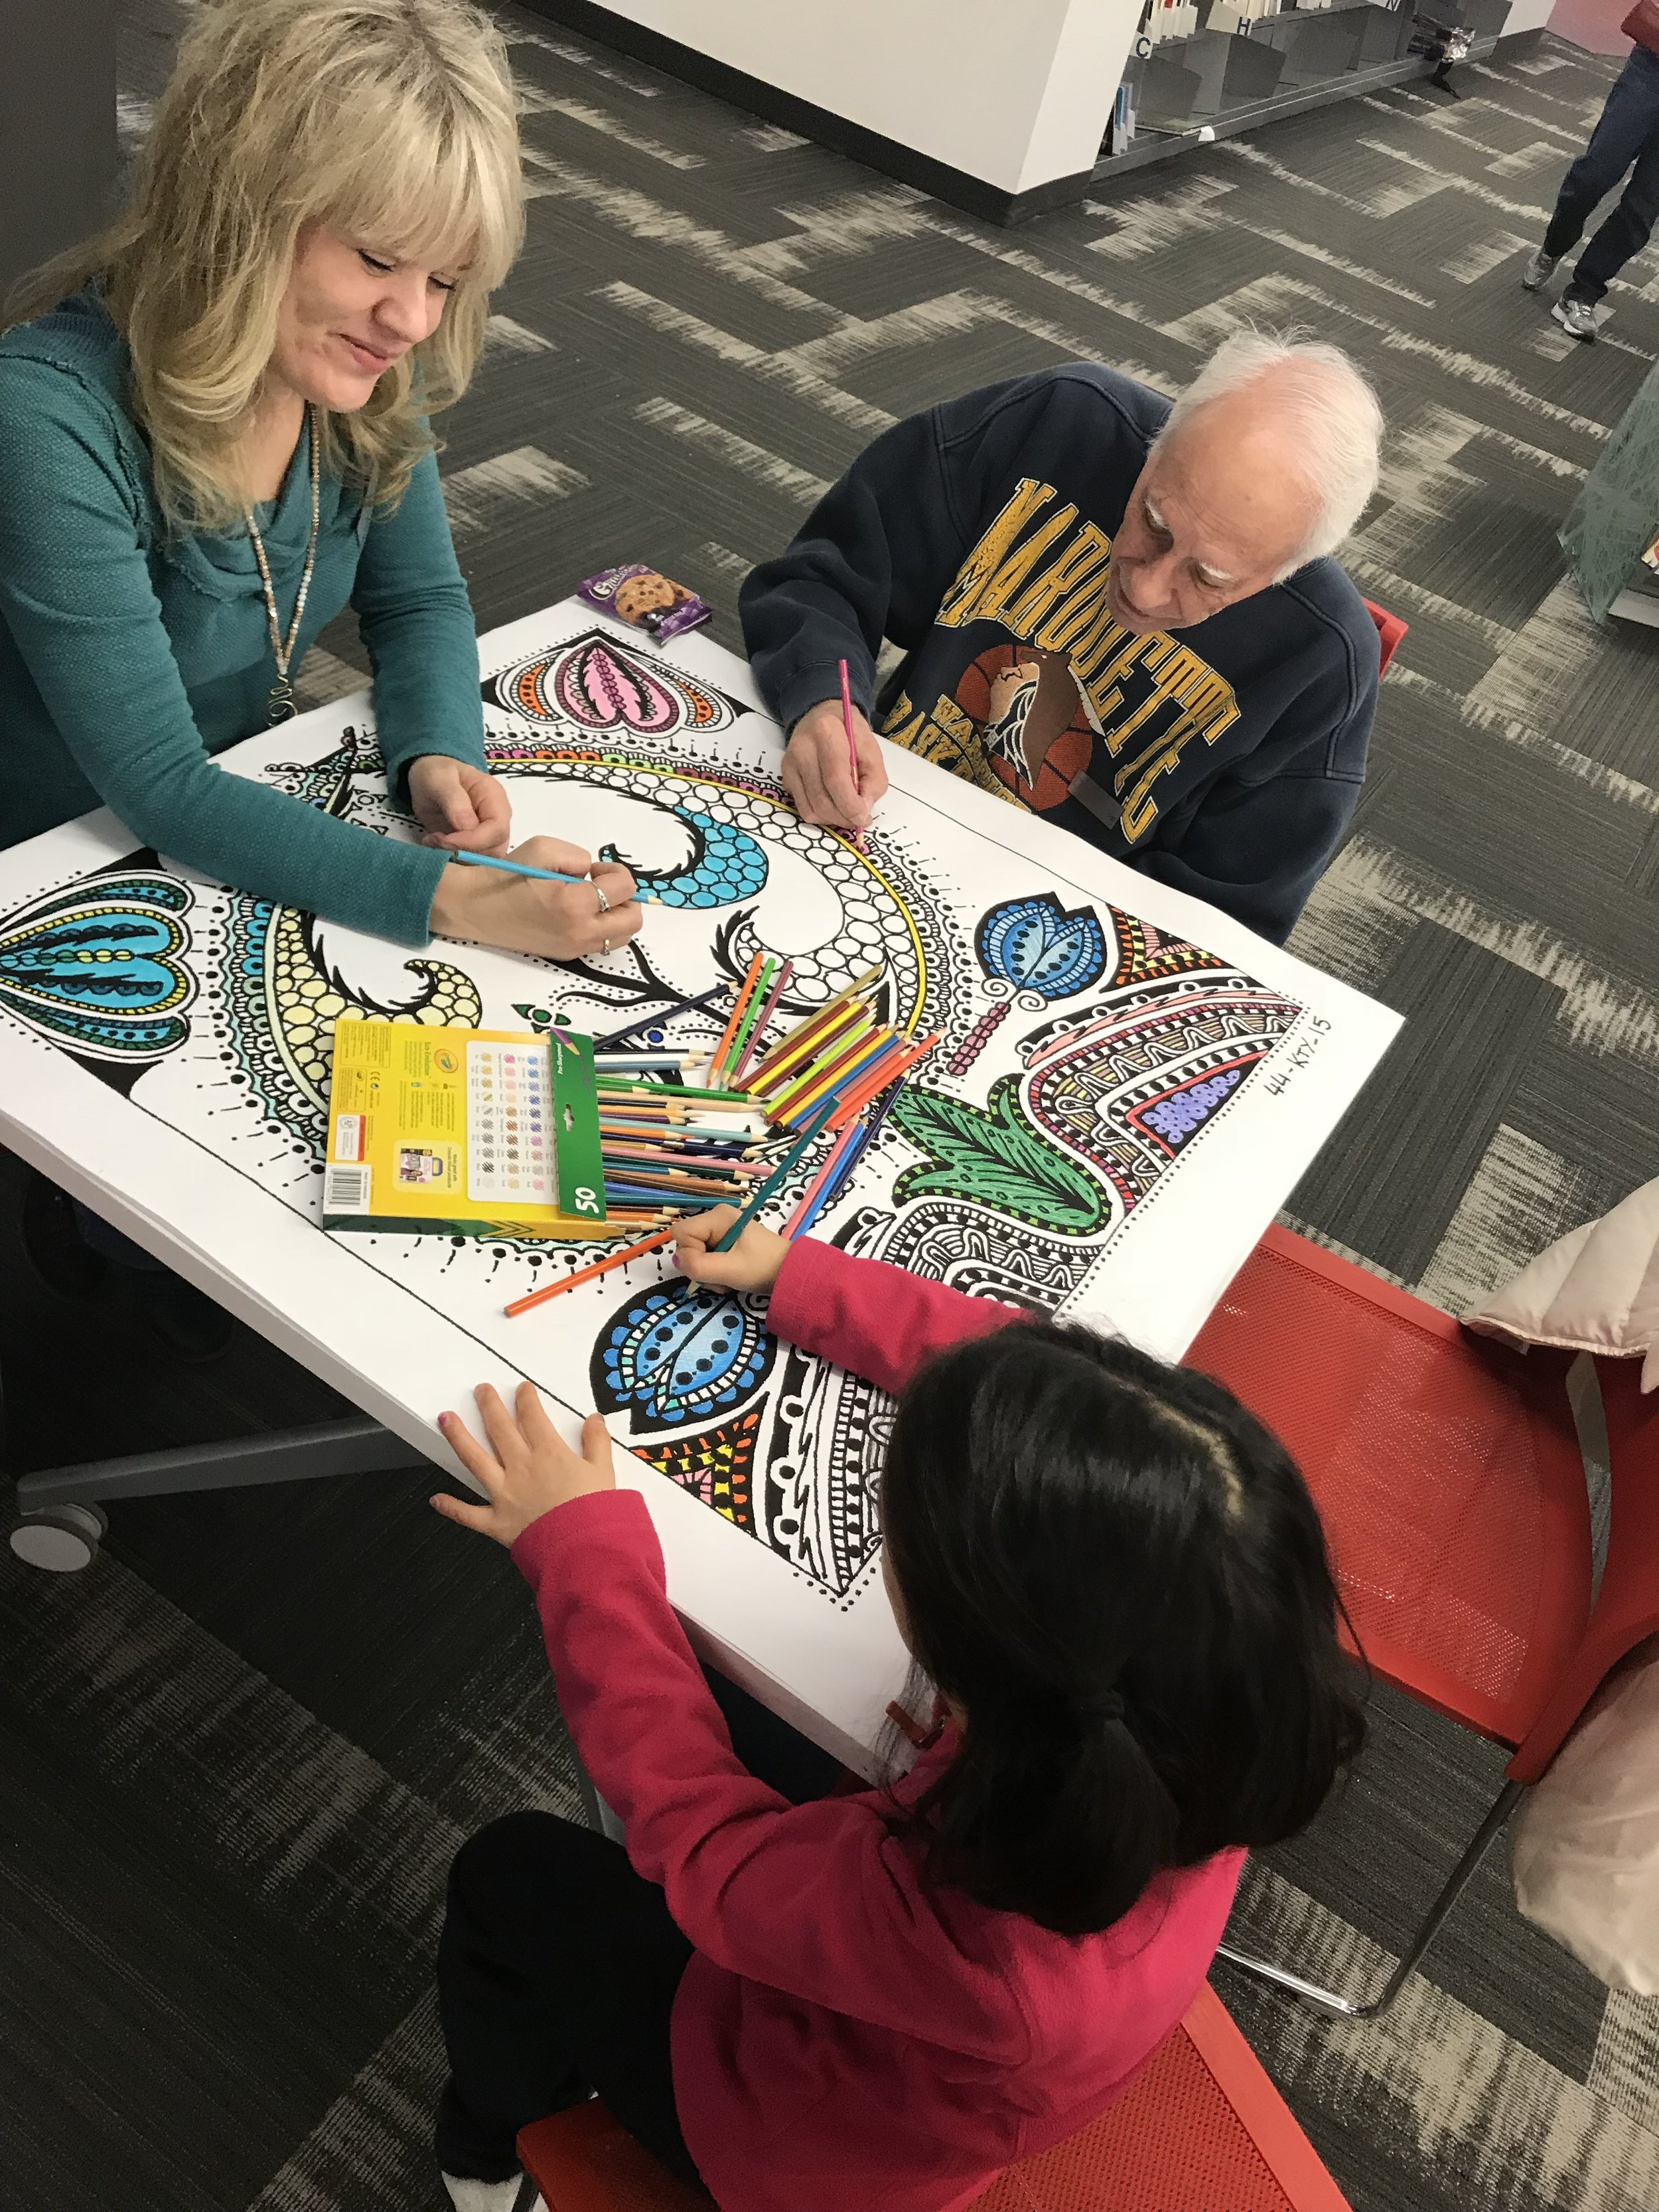 where is your journey taking you today? - 2018 barrington library family discovery event